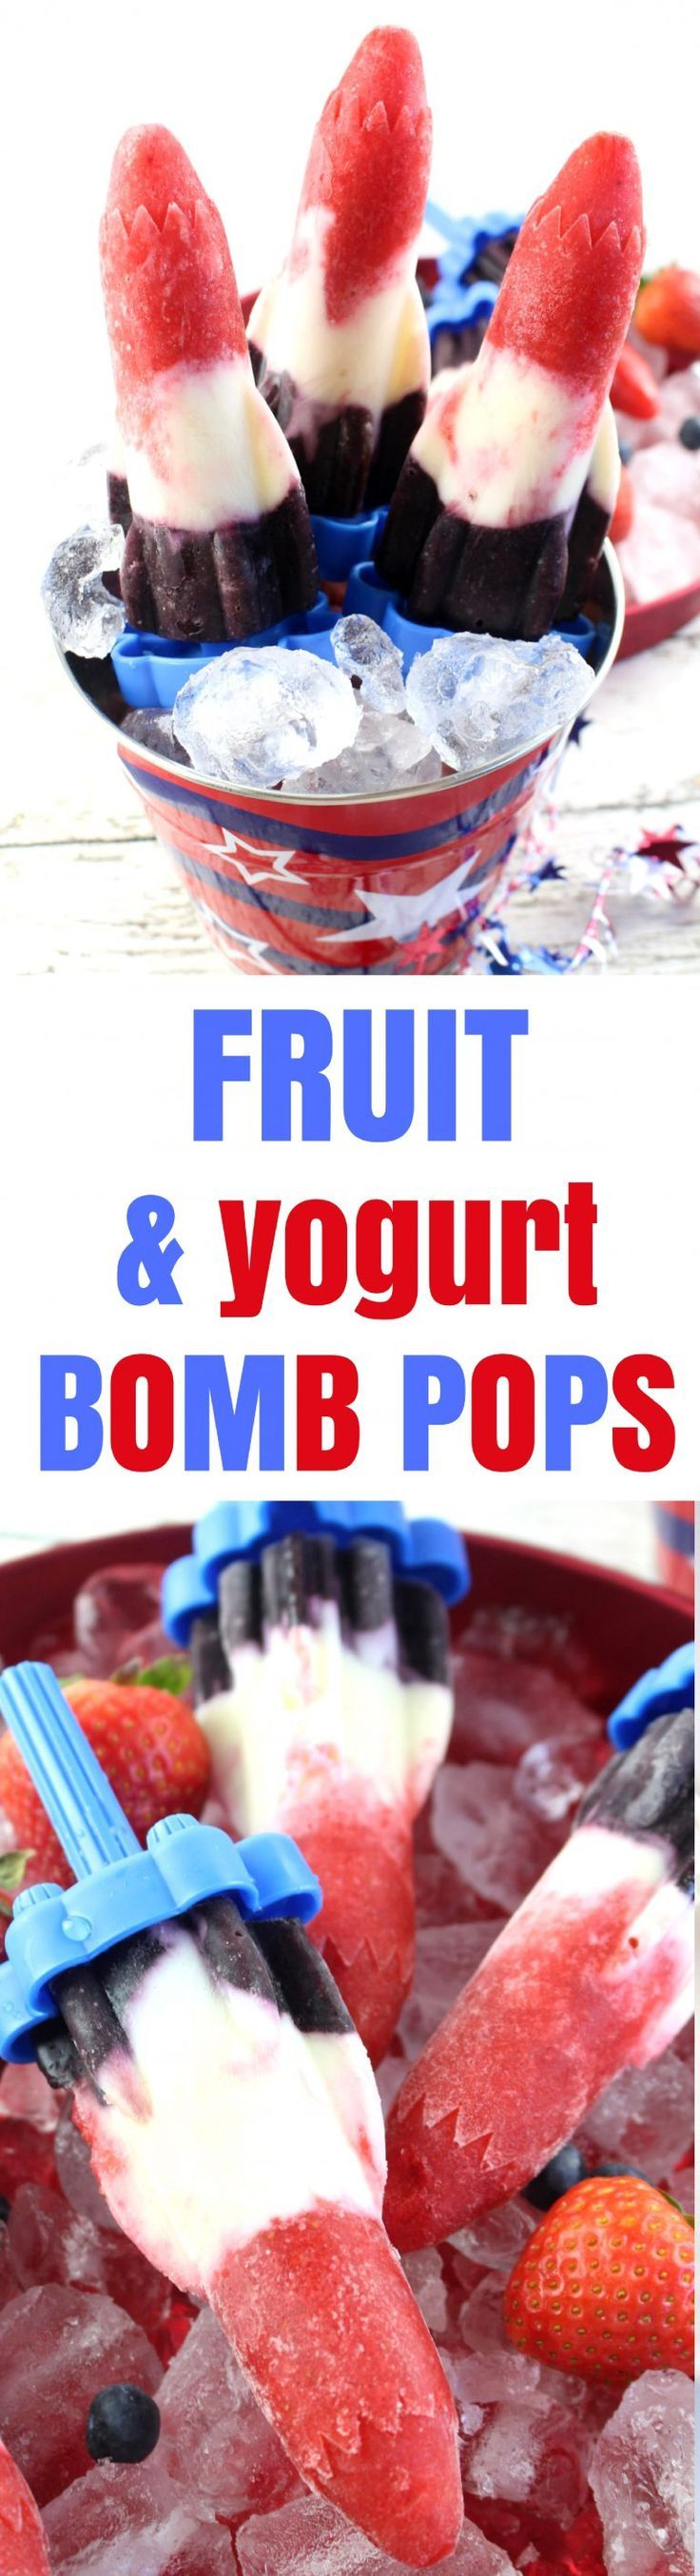 July 4th Red, White & Blue Fruit and Yogurt Bomb Pops Recipe Let's cool off this summer by starting off with these delicious red, white, and blue Patriotic Fruit and Yogurt Bomb Pops that are just perfect for a July 4th popsicle recipe, too! Filled with f